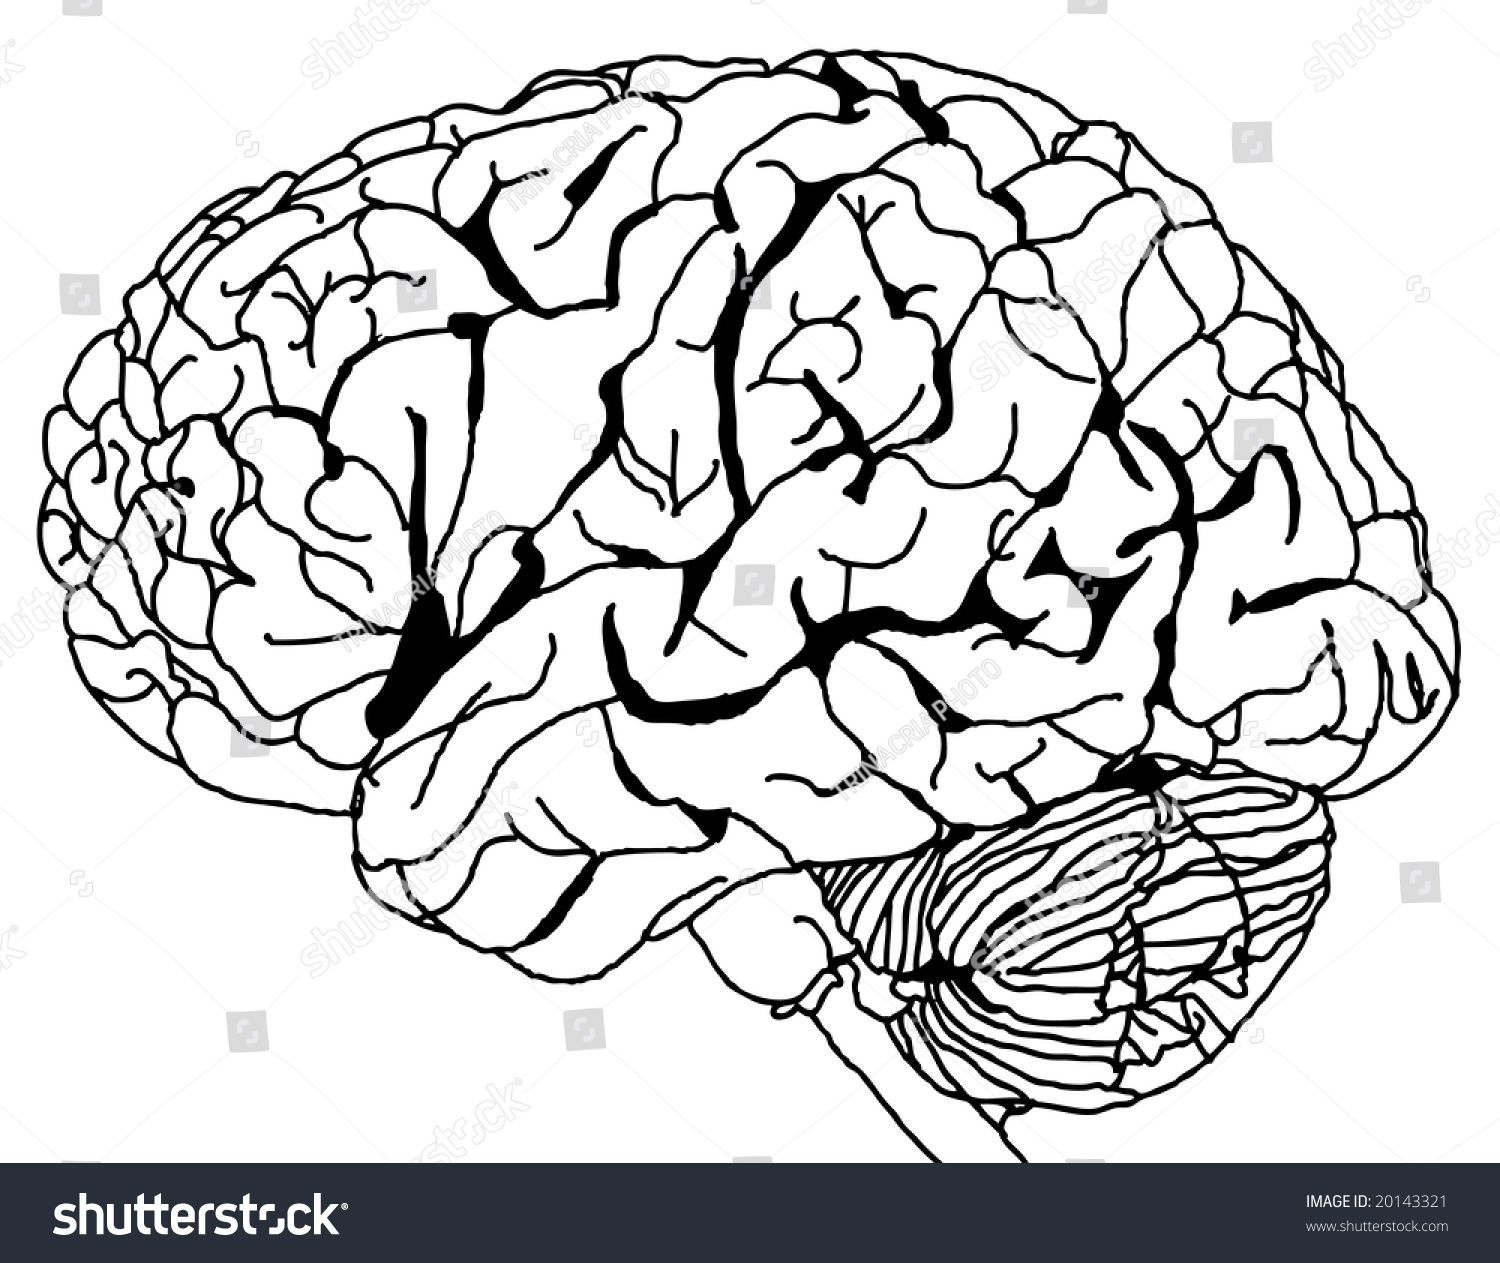 Line Drawing Brain : Contour line drawing of a brain vector